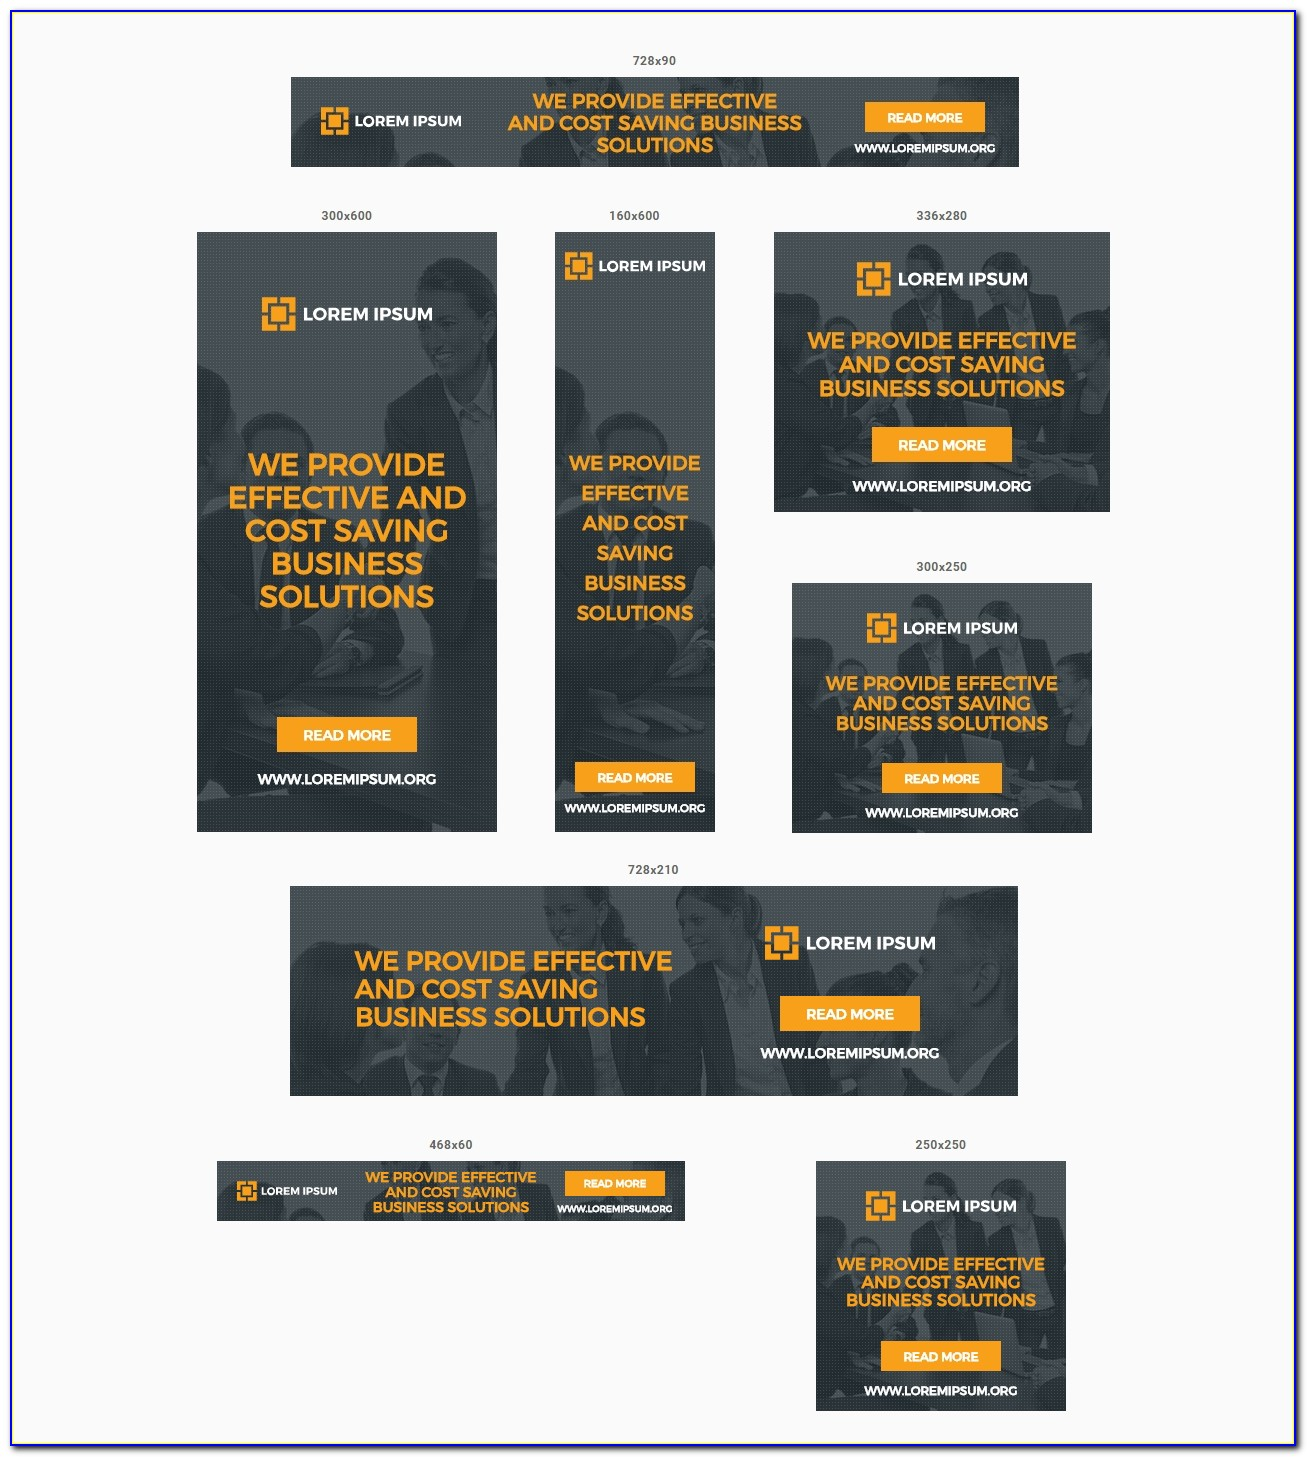 Html5 Banner Ad Templates Free Download